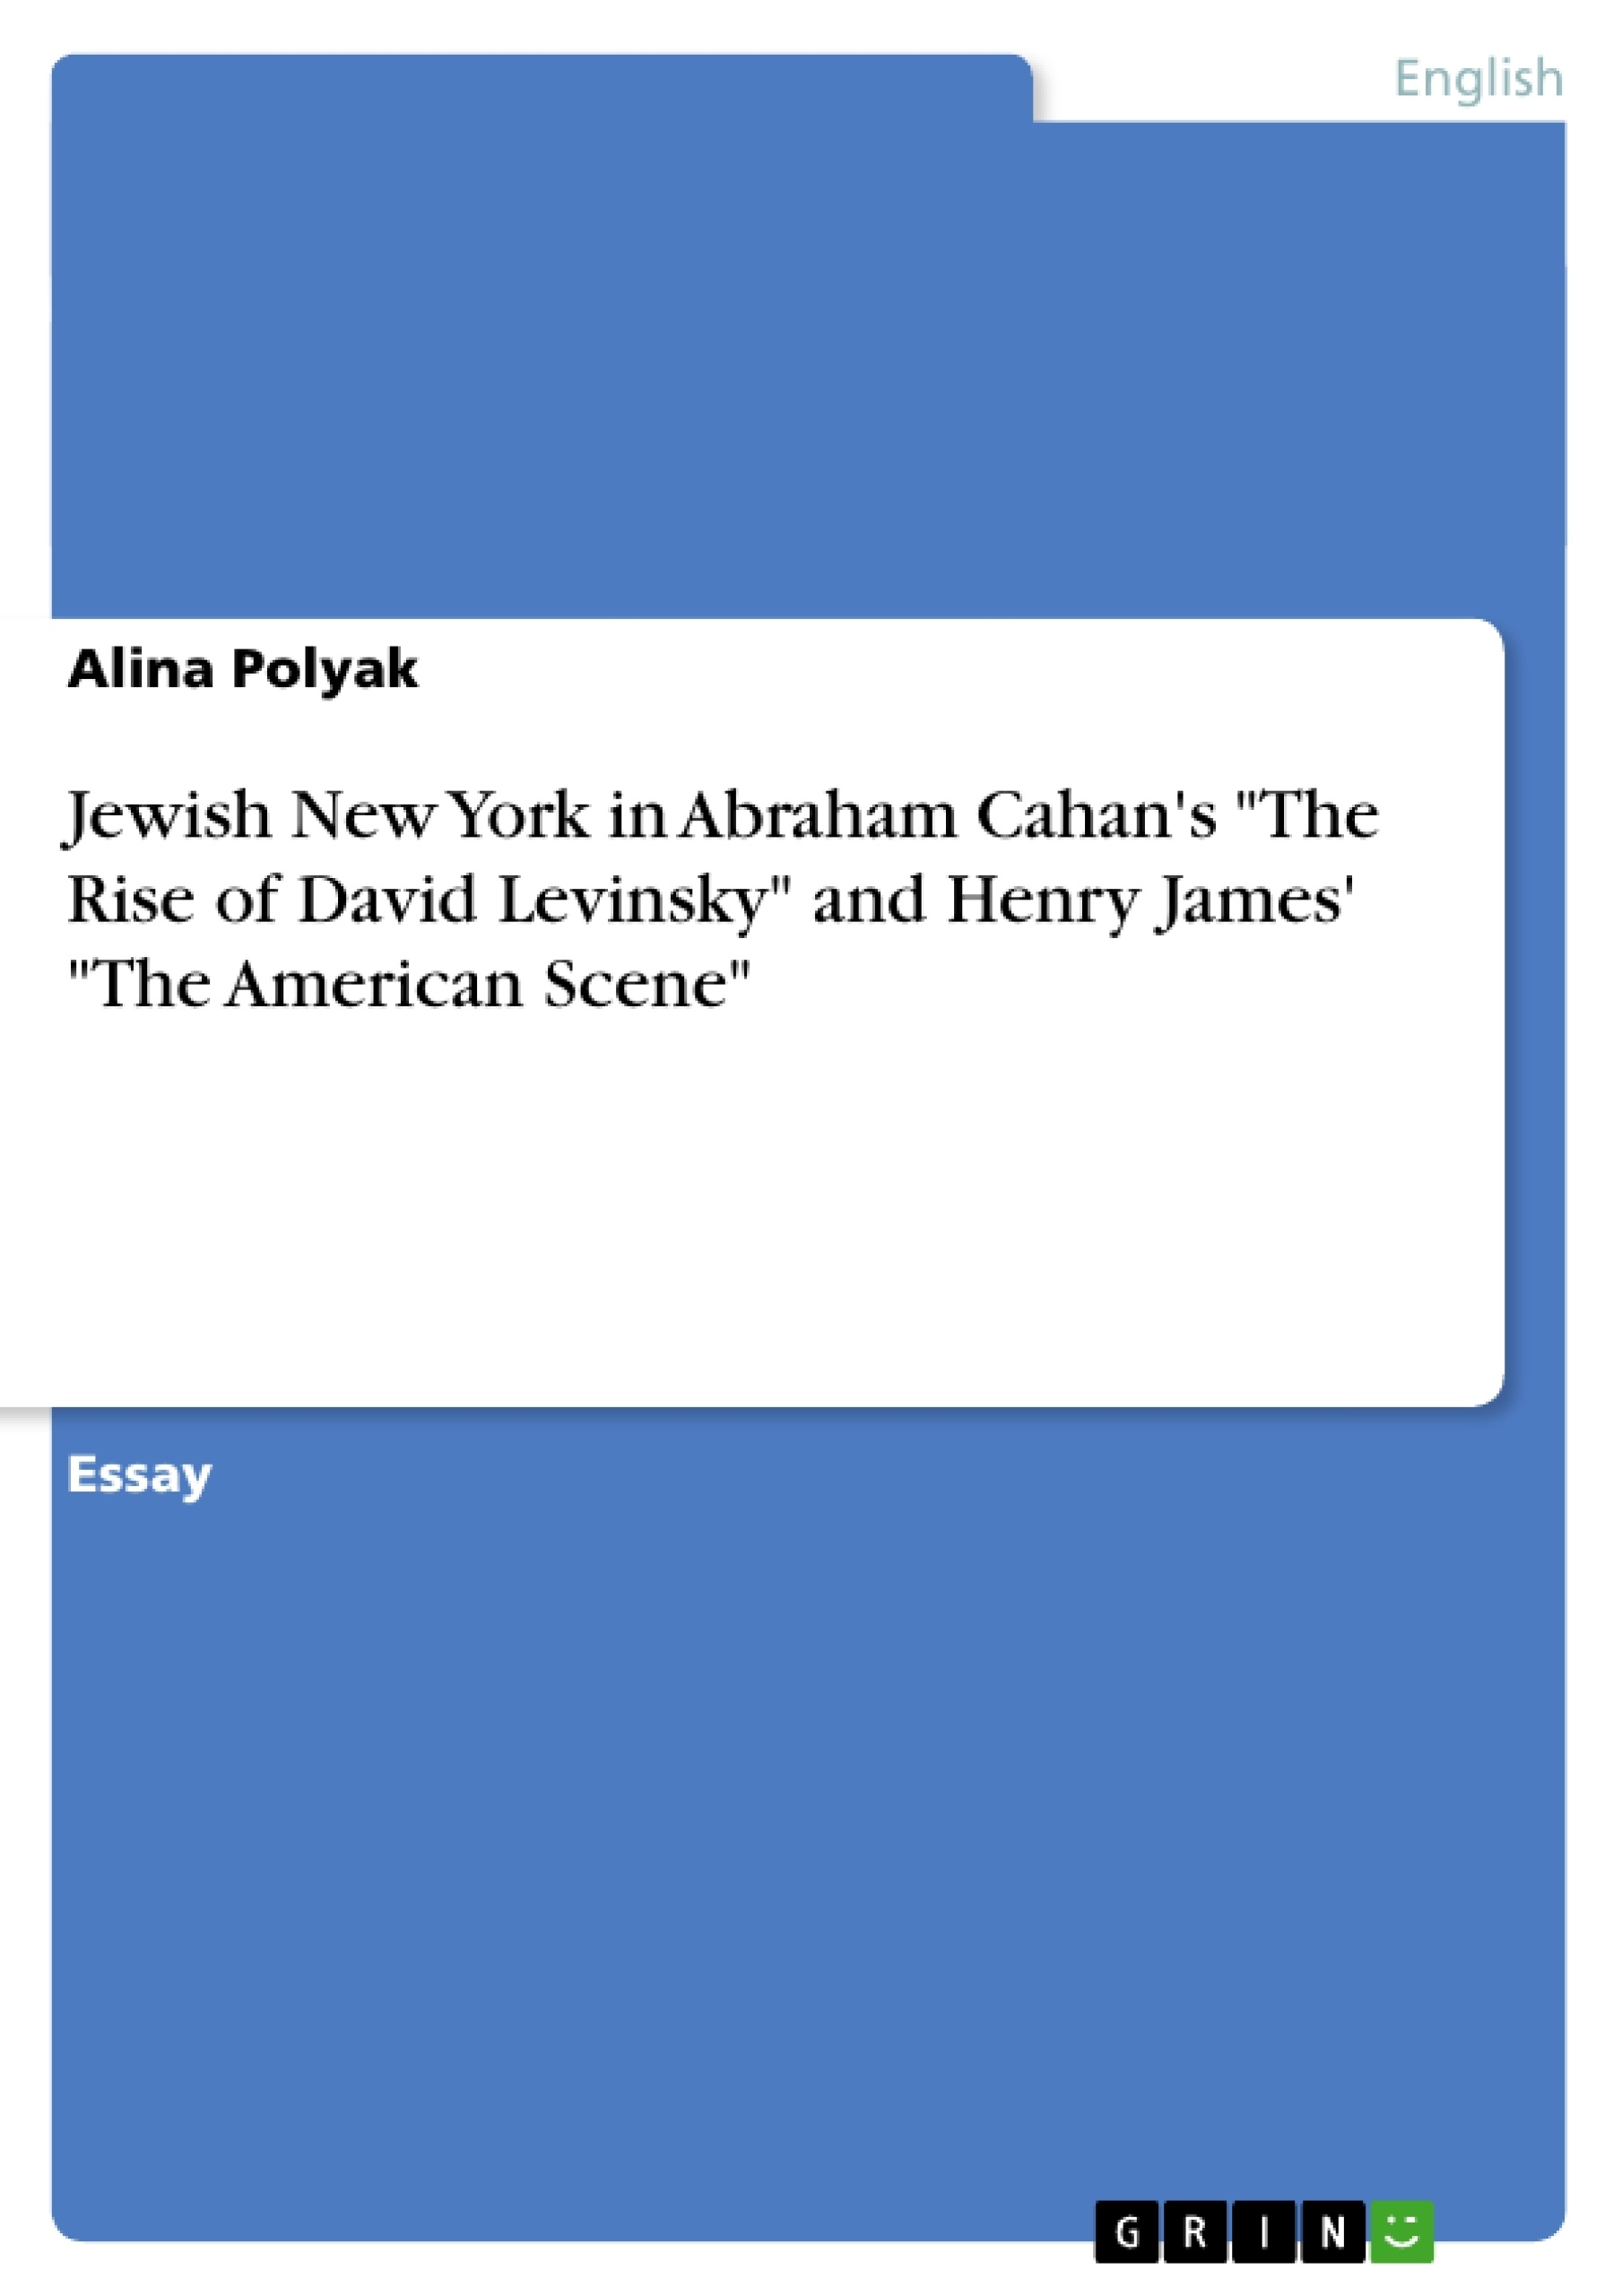 jewish new york in abraham cahan s the rise of david levinsky jewish new york in abraham cahan s the rise of david levinsky publish your master s thesis bachelor s thesis essay or term paper